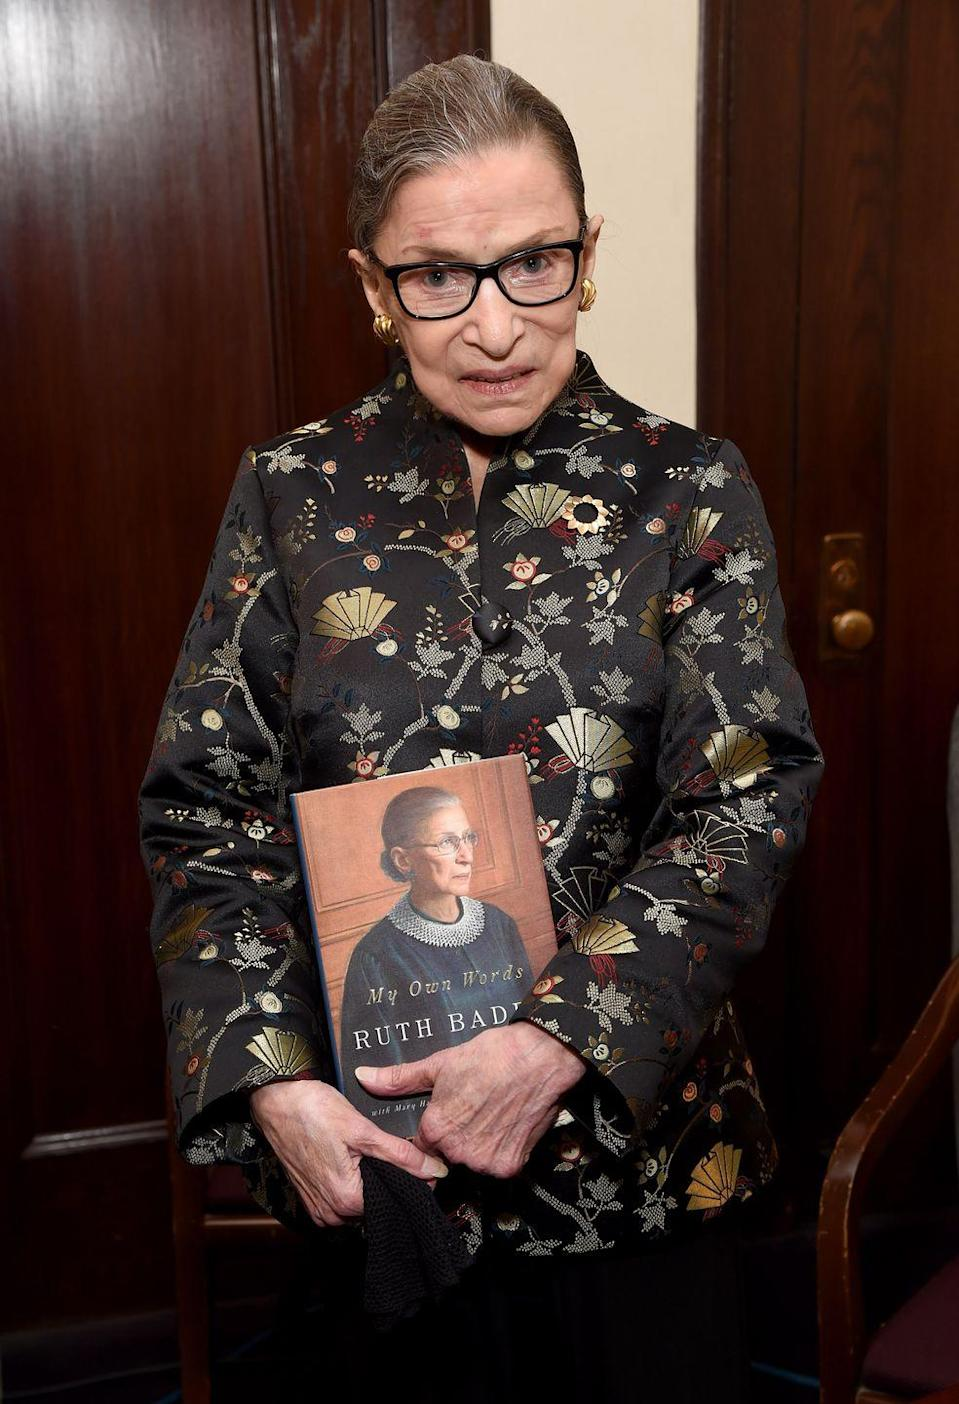 "<p>In 2016, Ginsburg published her fifth book, <em>My Own Words</em>, and it was the first that she published as a Supreme Court justice. The book is a compilation of essays and speeches from throughout her career and includes her take on feminism. </p><p><a href=""https://www.amazon.com/Own-Words-Ruth-Bader-Ginsburg/dp/150114524X?tag=syn-yahoo-20&ascsubtag=%5Bartid%7C10055.g.34083680%5Bsrc%7Cyahoo-us"" rel=""nofollow noopener"" target=""_blank"" data-ylk=""slk:She wrote"" class=""link rapid-noclick-resp"">She wrote</a>, ""Feminism…I think the simplest explanation, and one that captures the idea, is a song that Marlo Thomas sang, 'Free to be You and Me.' Free to be, if you were a girl—doctor, lawyer, Indian chief. Anything you want to be. And if you're a boy, and you like teaching, you like nursing, you would like to have a doll, that's okay too."" </p>"